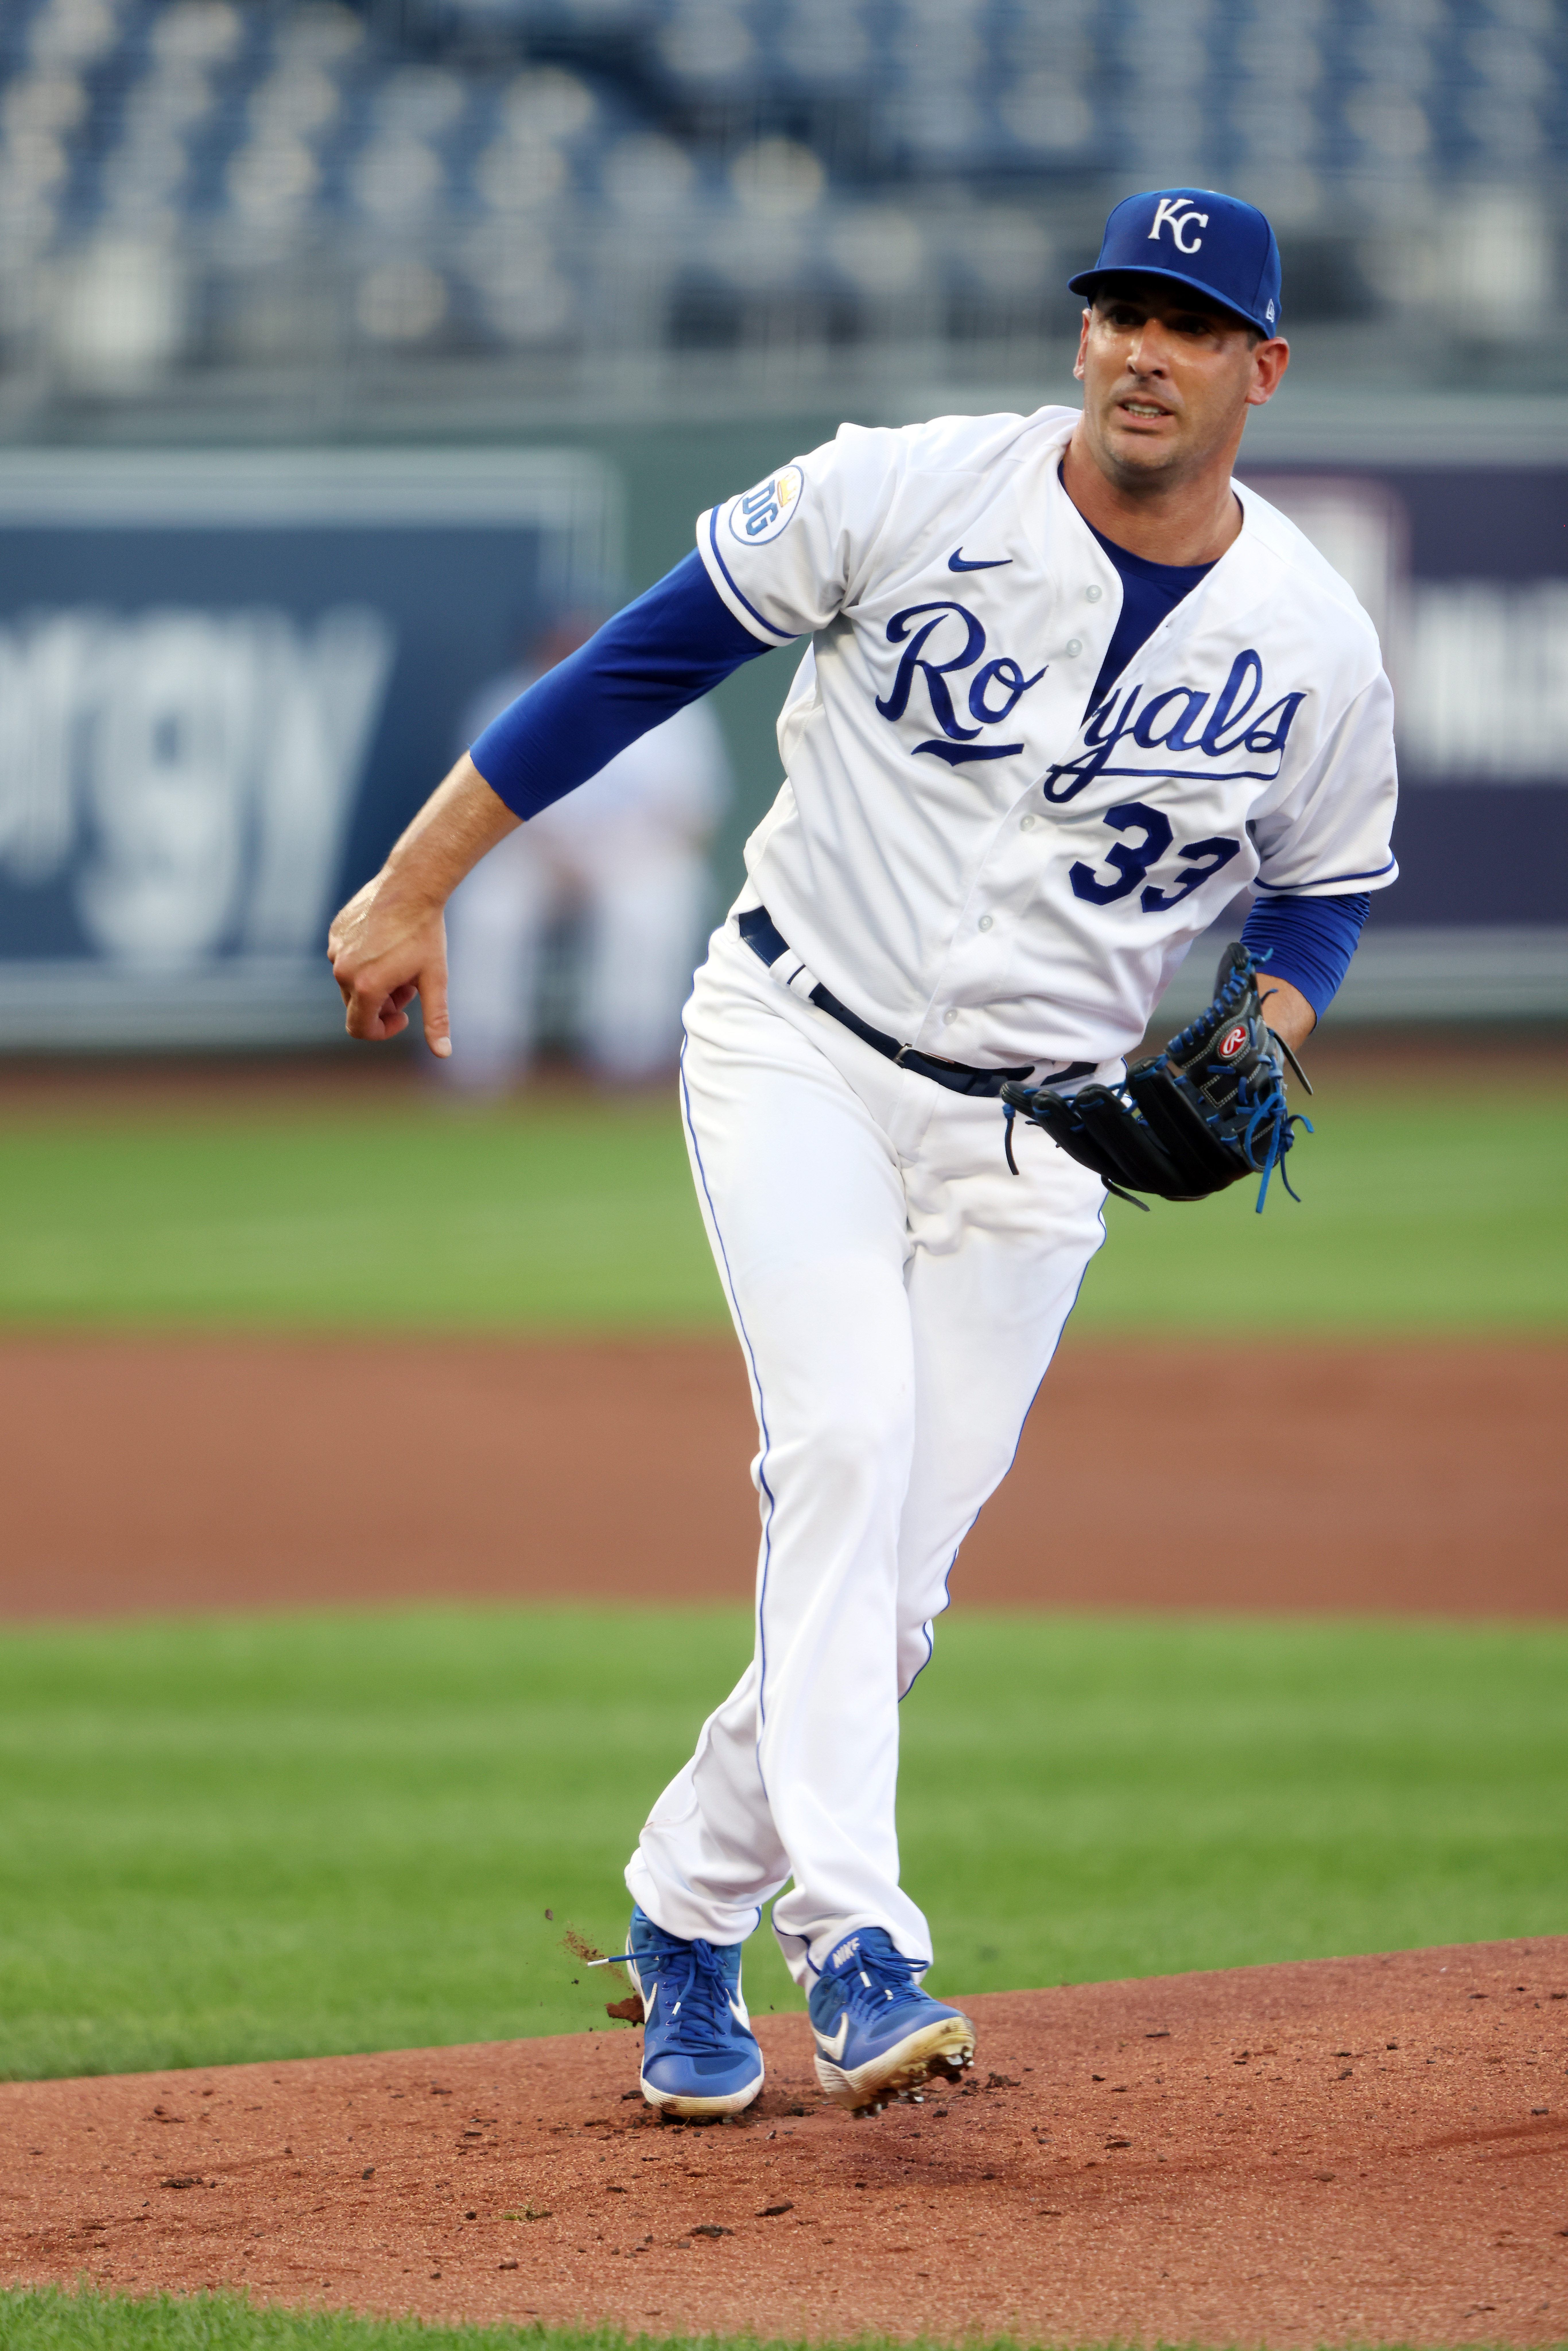 Starting pitcher Matt Harvey #33 of the Kansas City Royals pitches during the 1st inning of game two of a doubleheader against the Cincinnati Reds at Kauffman Stadium on August 19, 2020 in Kansas City, Missouri.